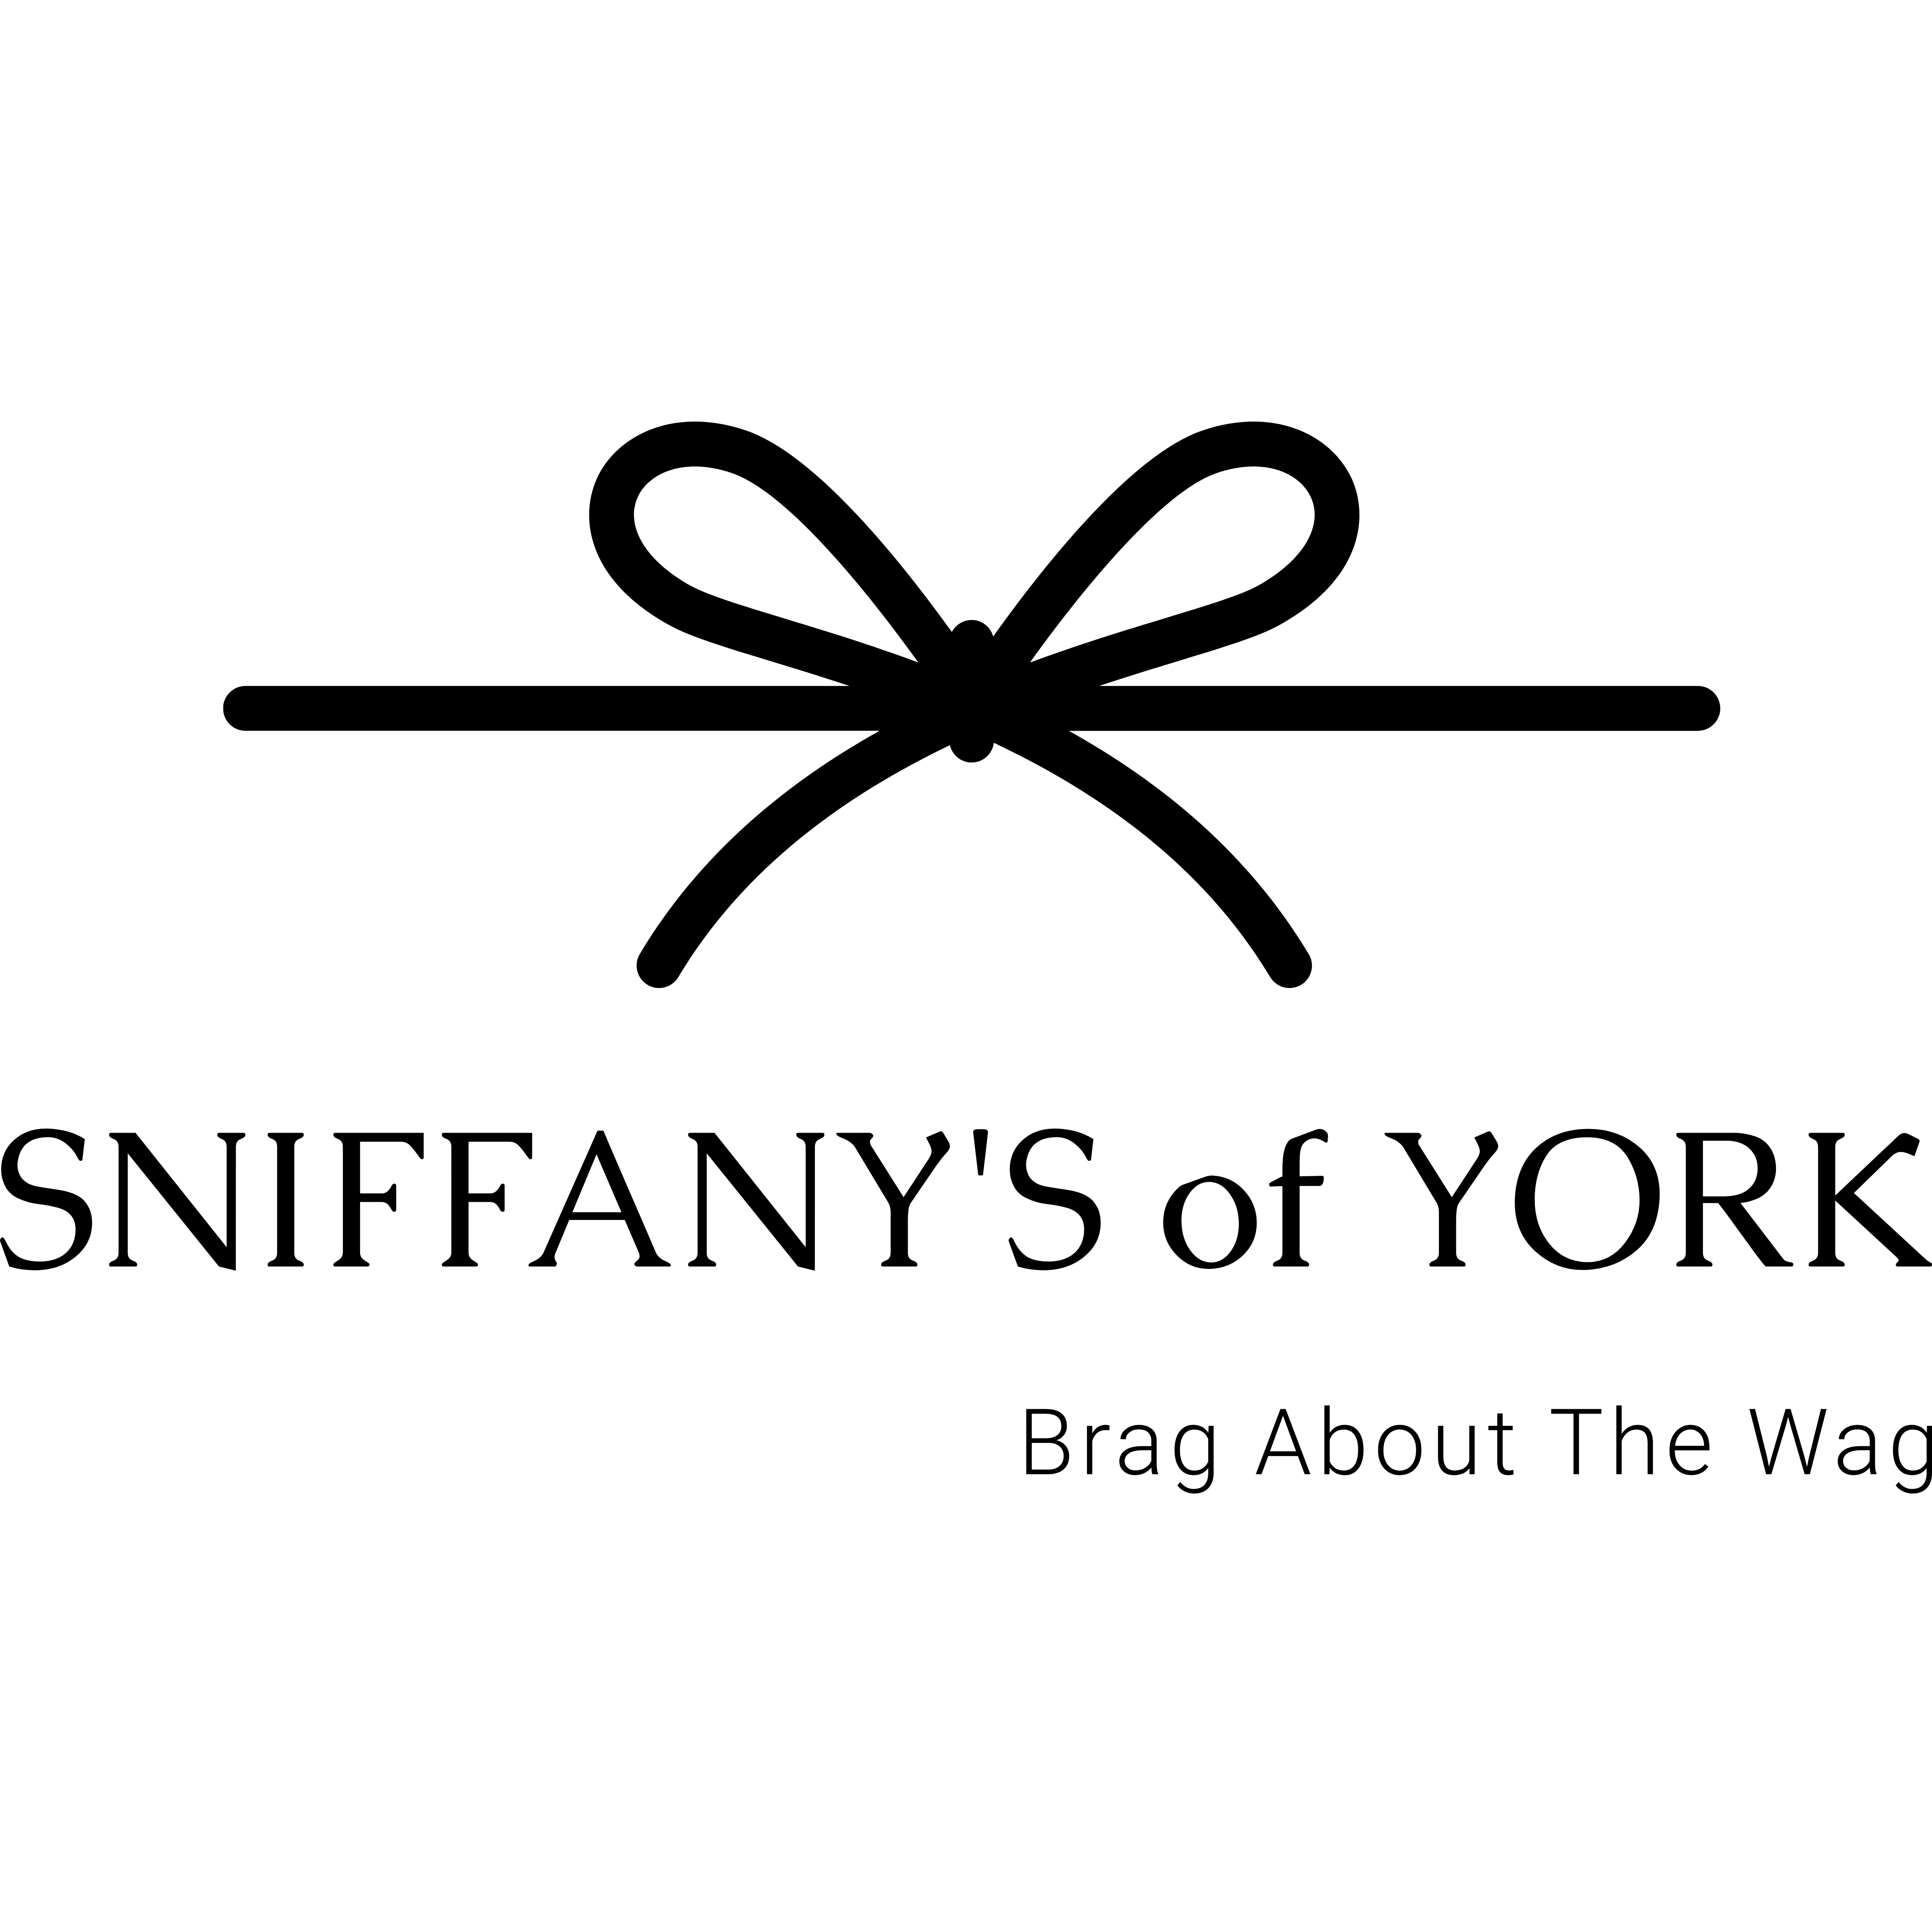 Sniffany's of York